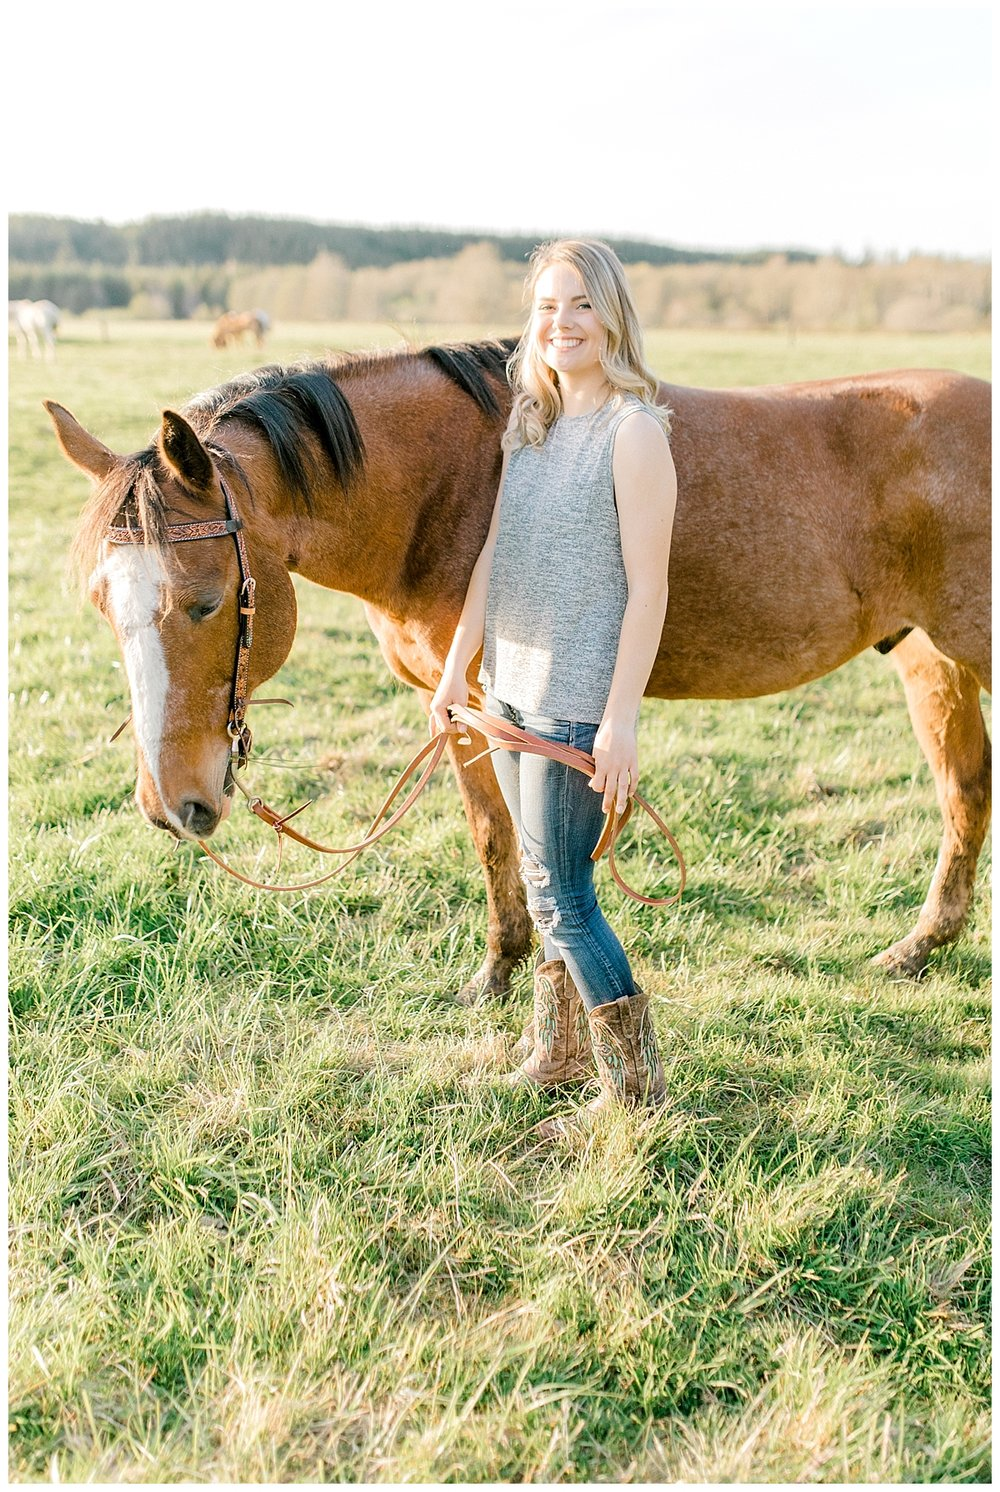 Sunset Senior Session with Horse | Senior Session Inspiration Session | Horse Photo Session | Pacific Northwest Light and Airy Wedding and Portrait Photographer | Emma Rose Company | Kindred Presets Senior Session Horses.jpg